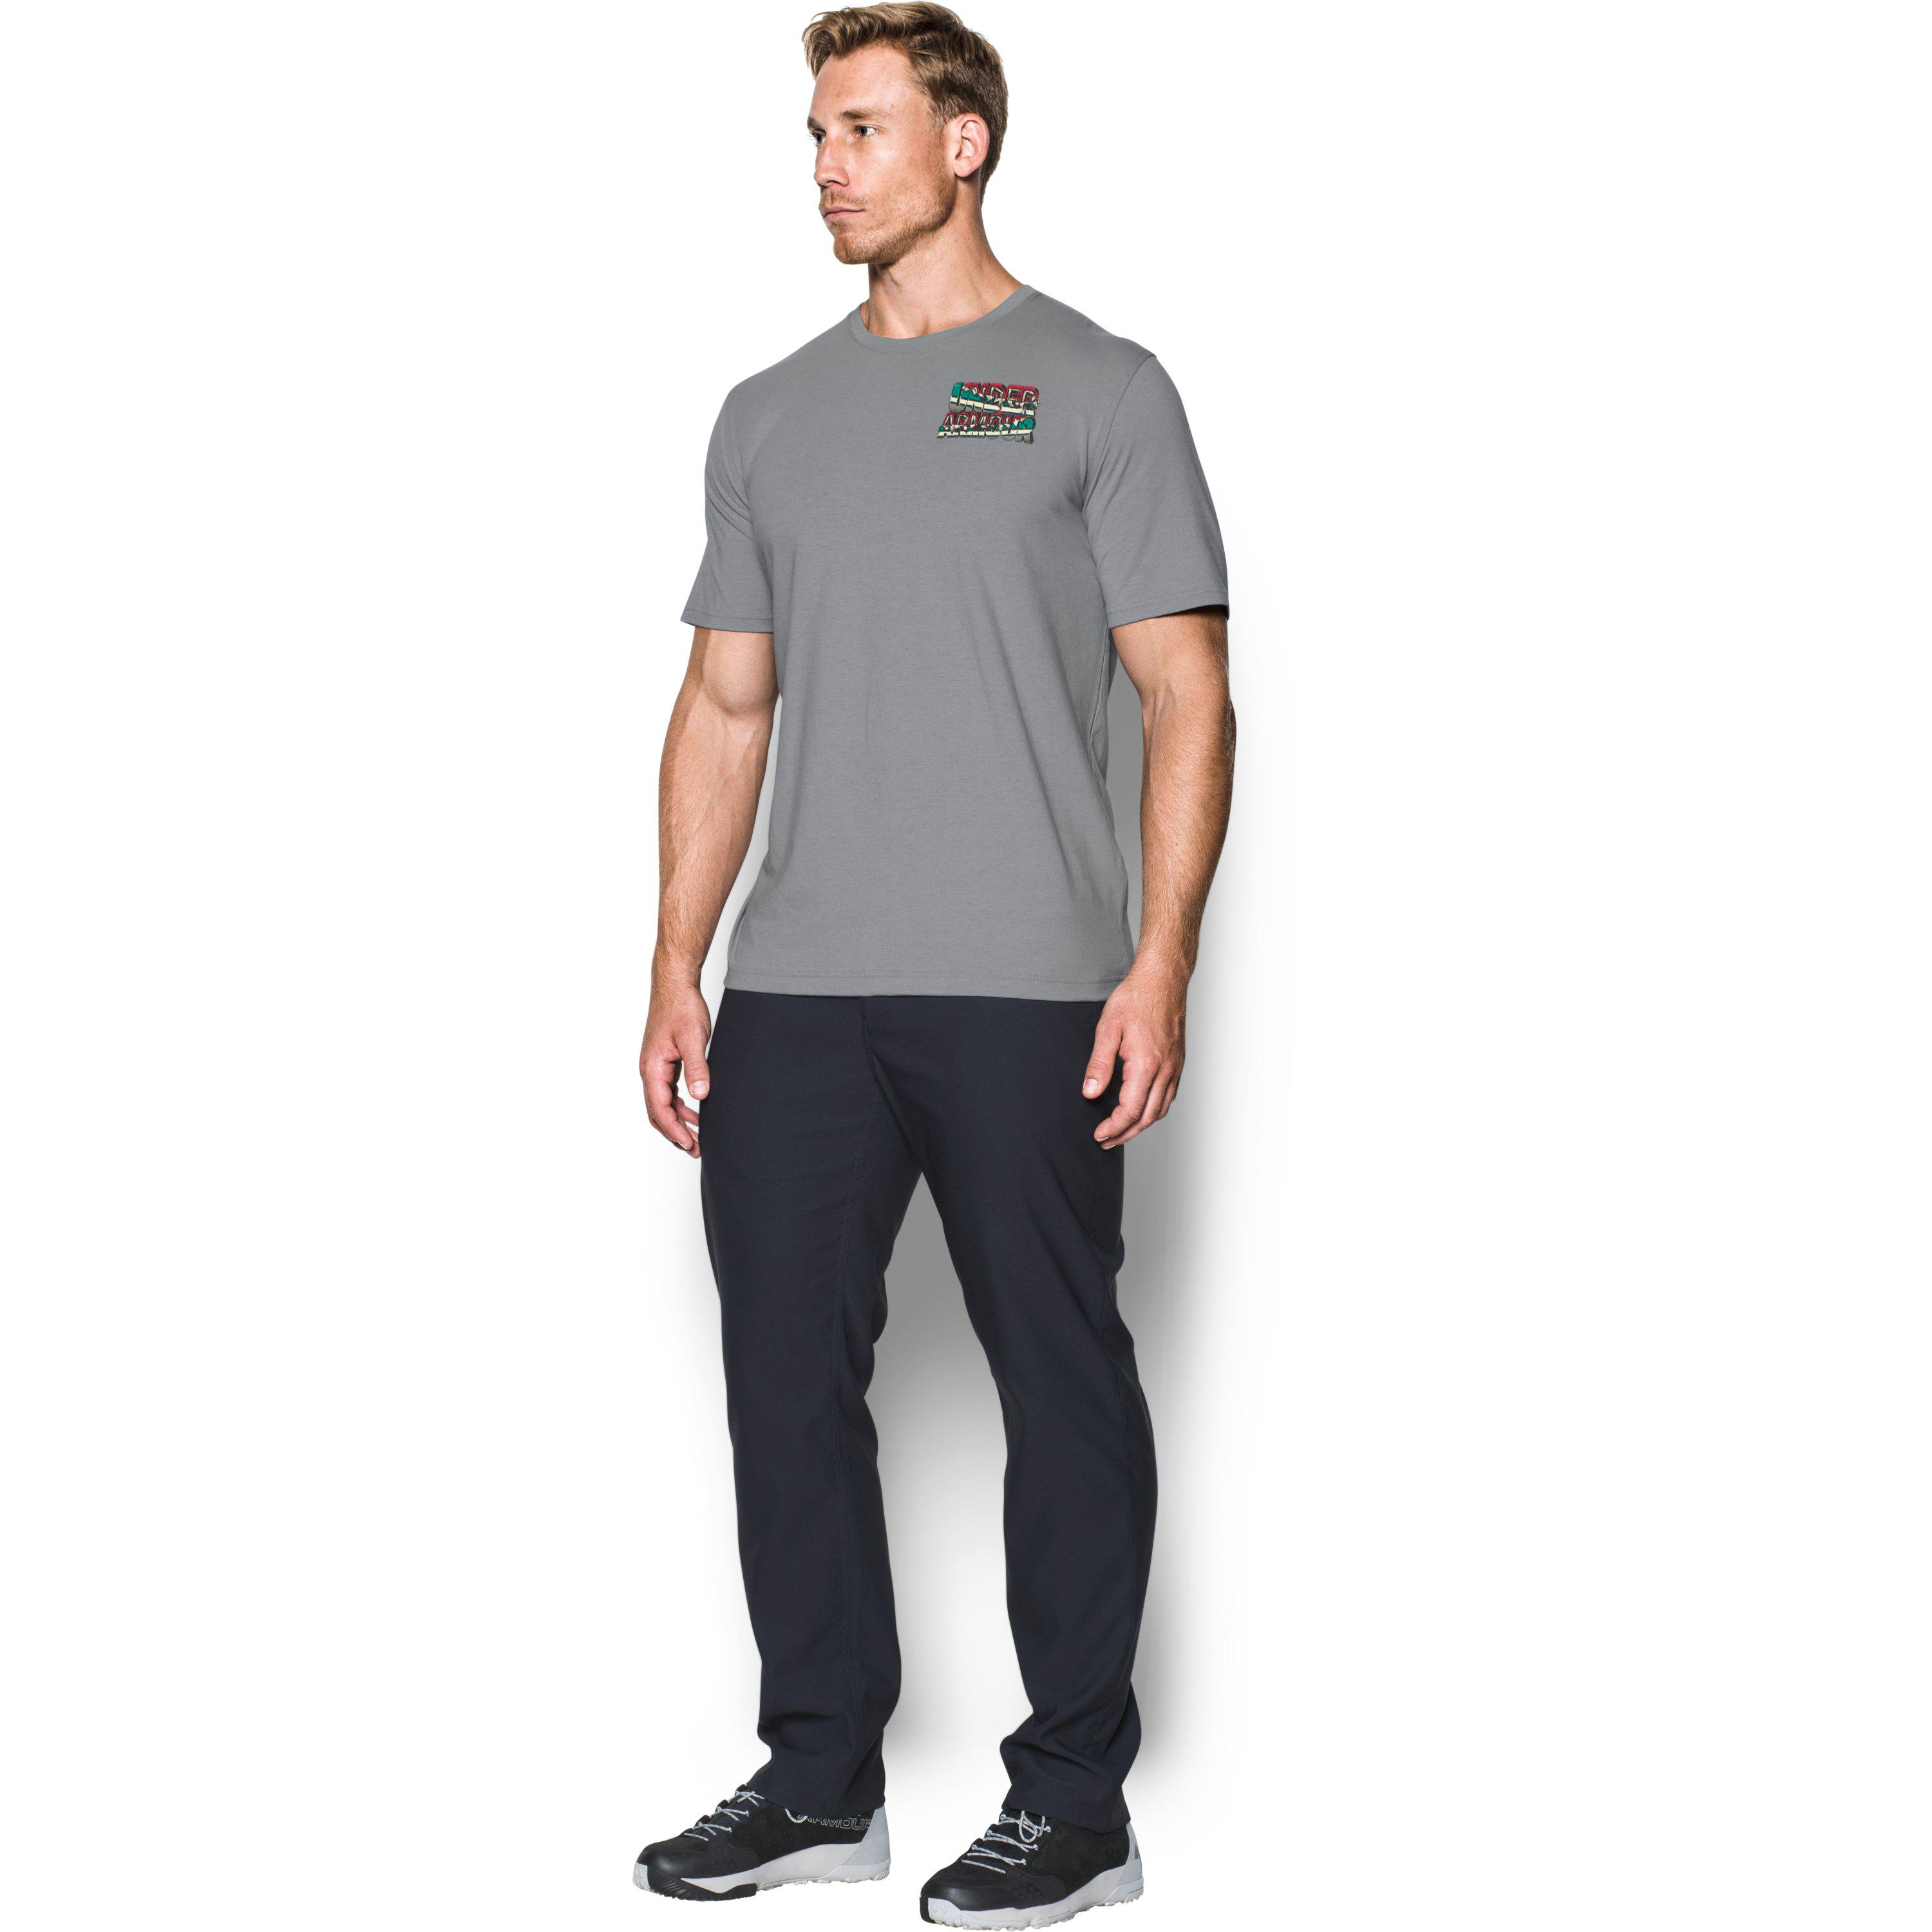 Old Navy Polo Shirts Mens - Prism Contractors & Engineers